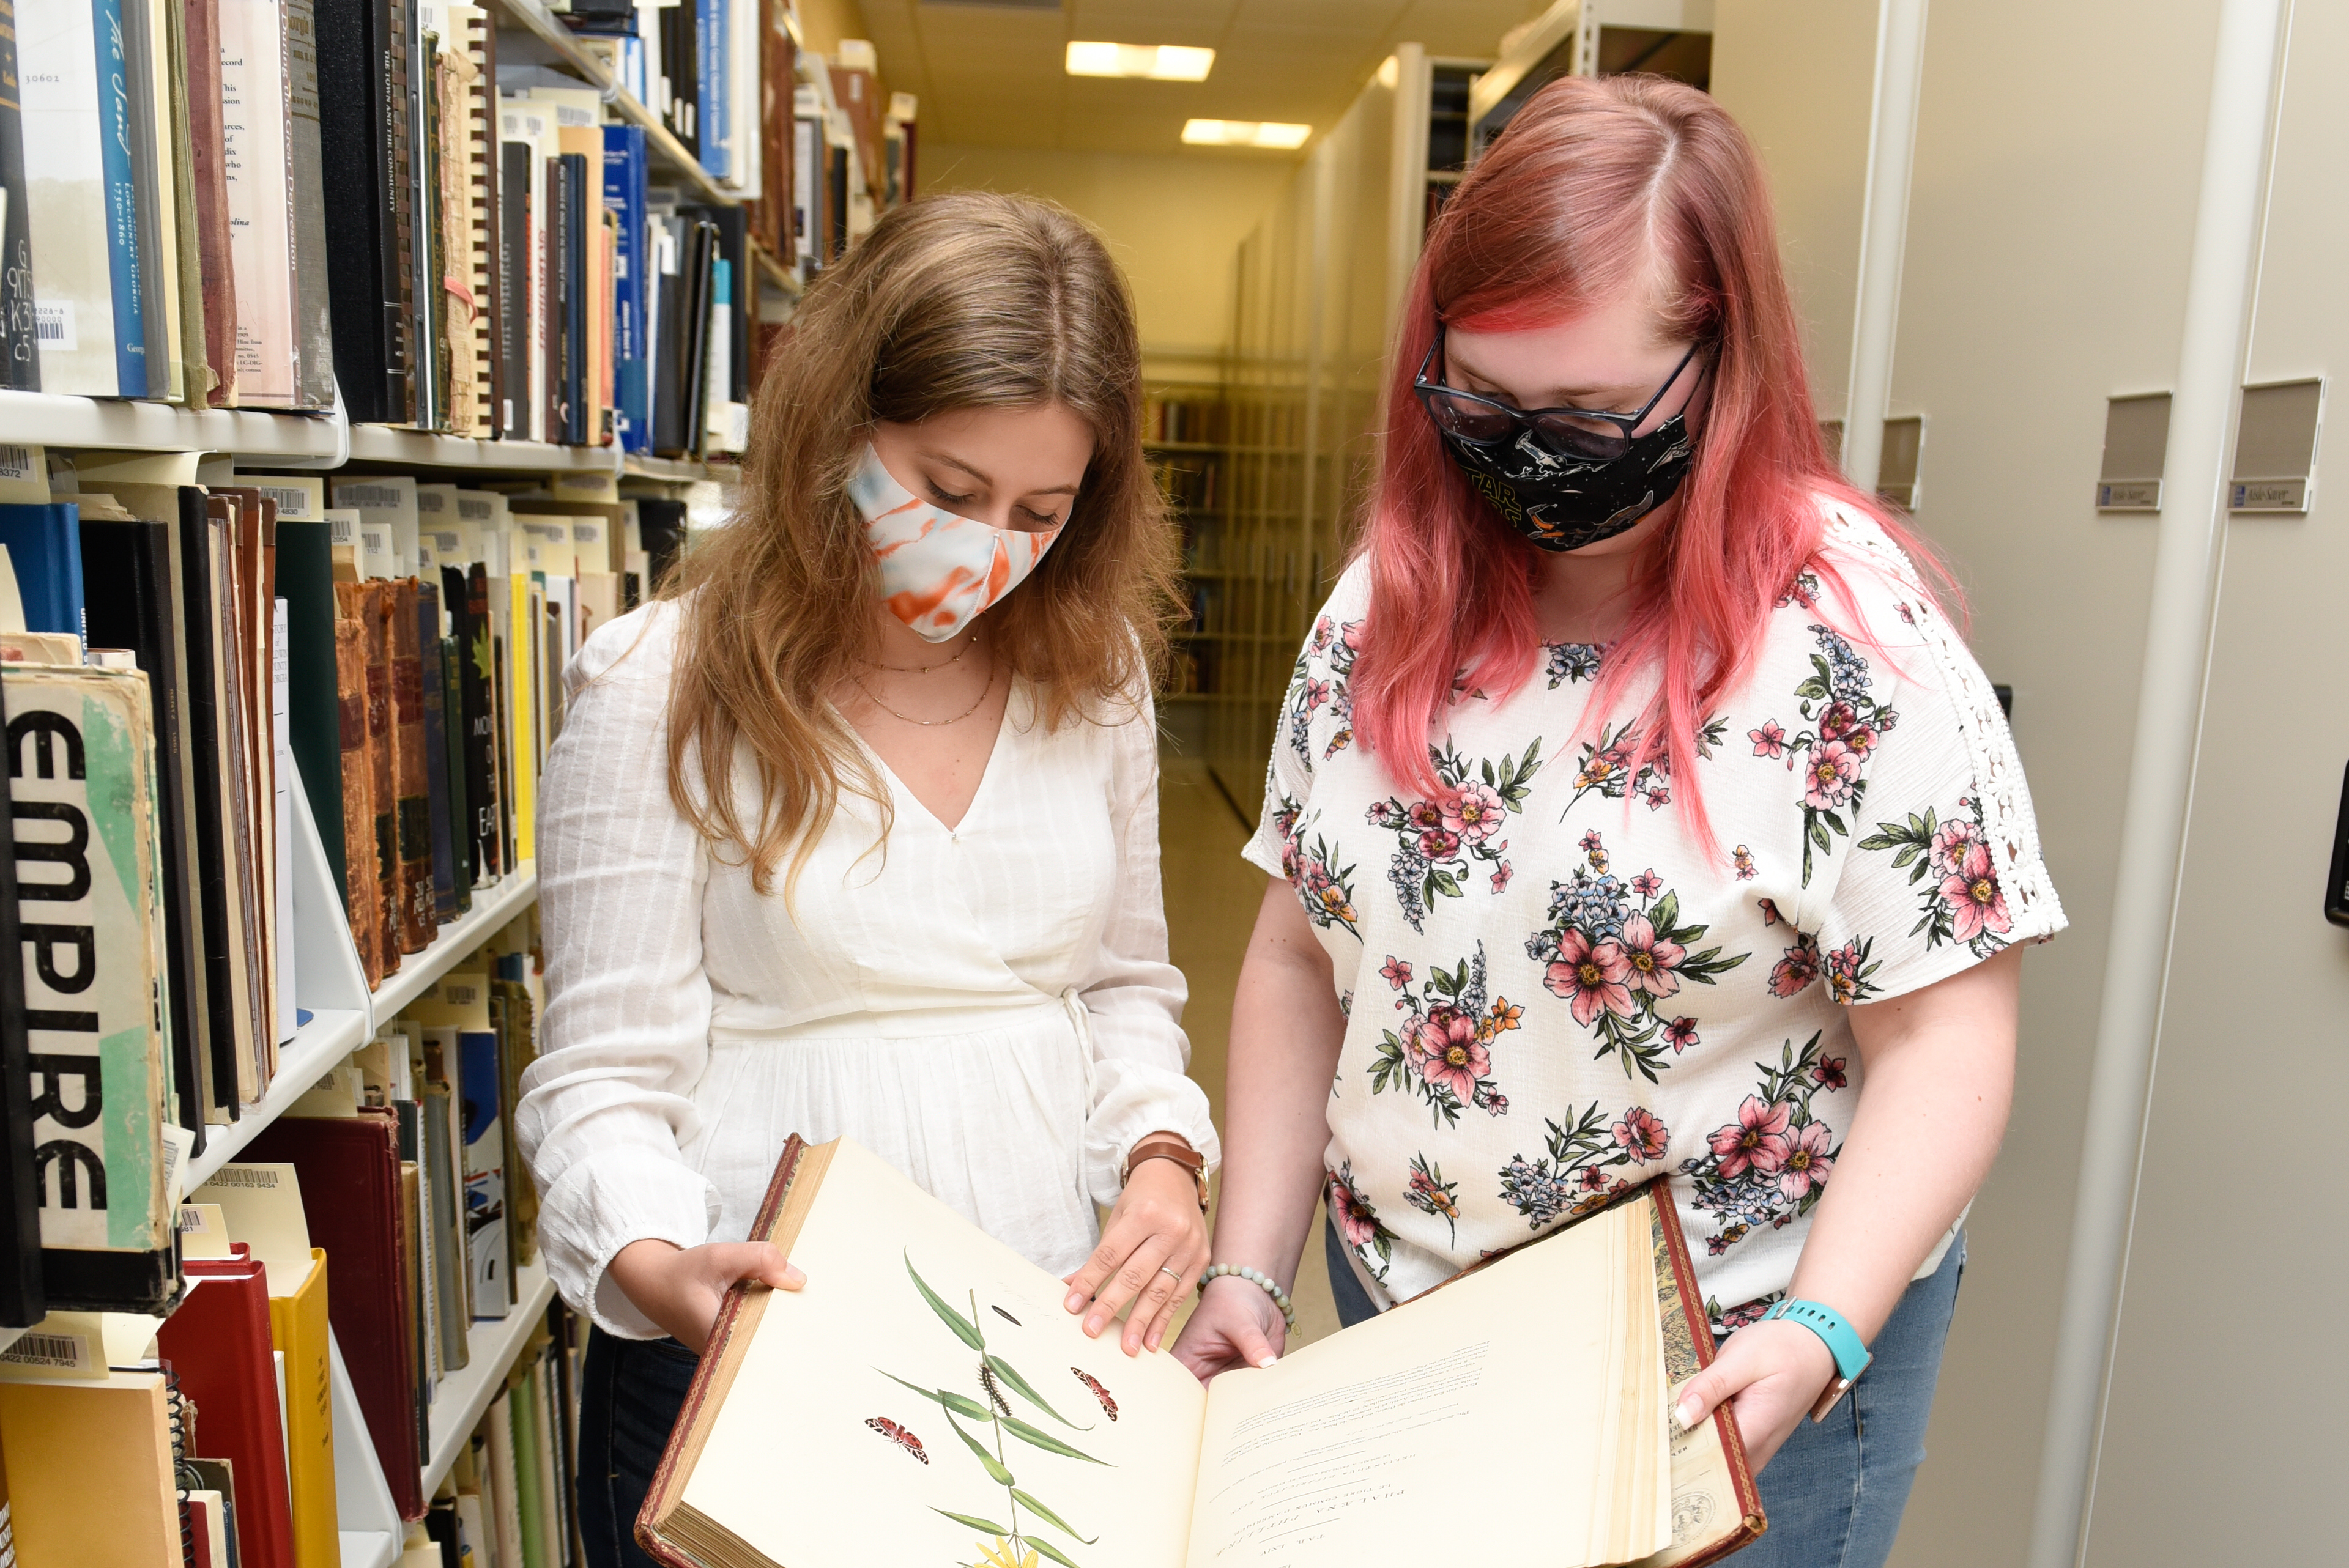 Student assistants in Special Collections at the Russell Library examine a botanical illustration.